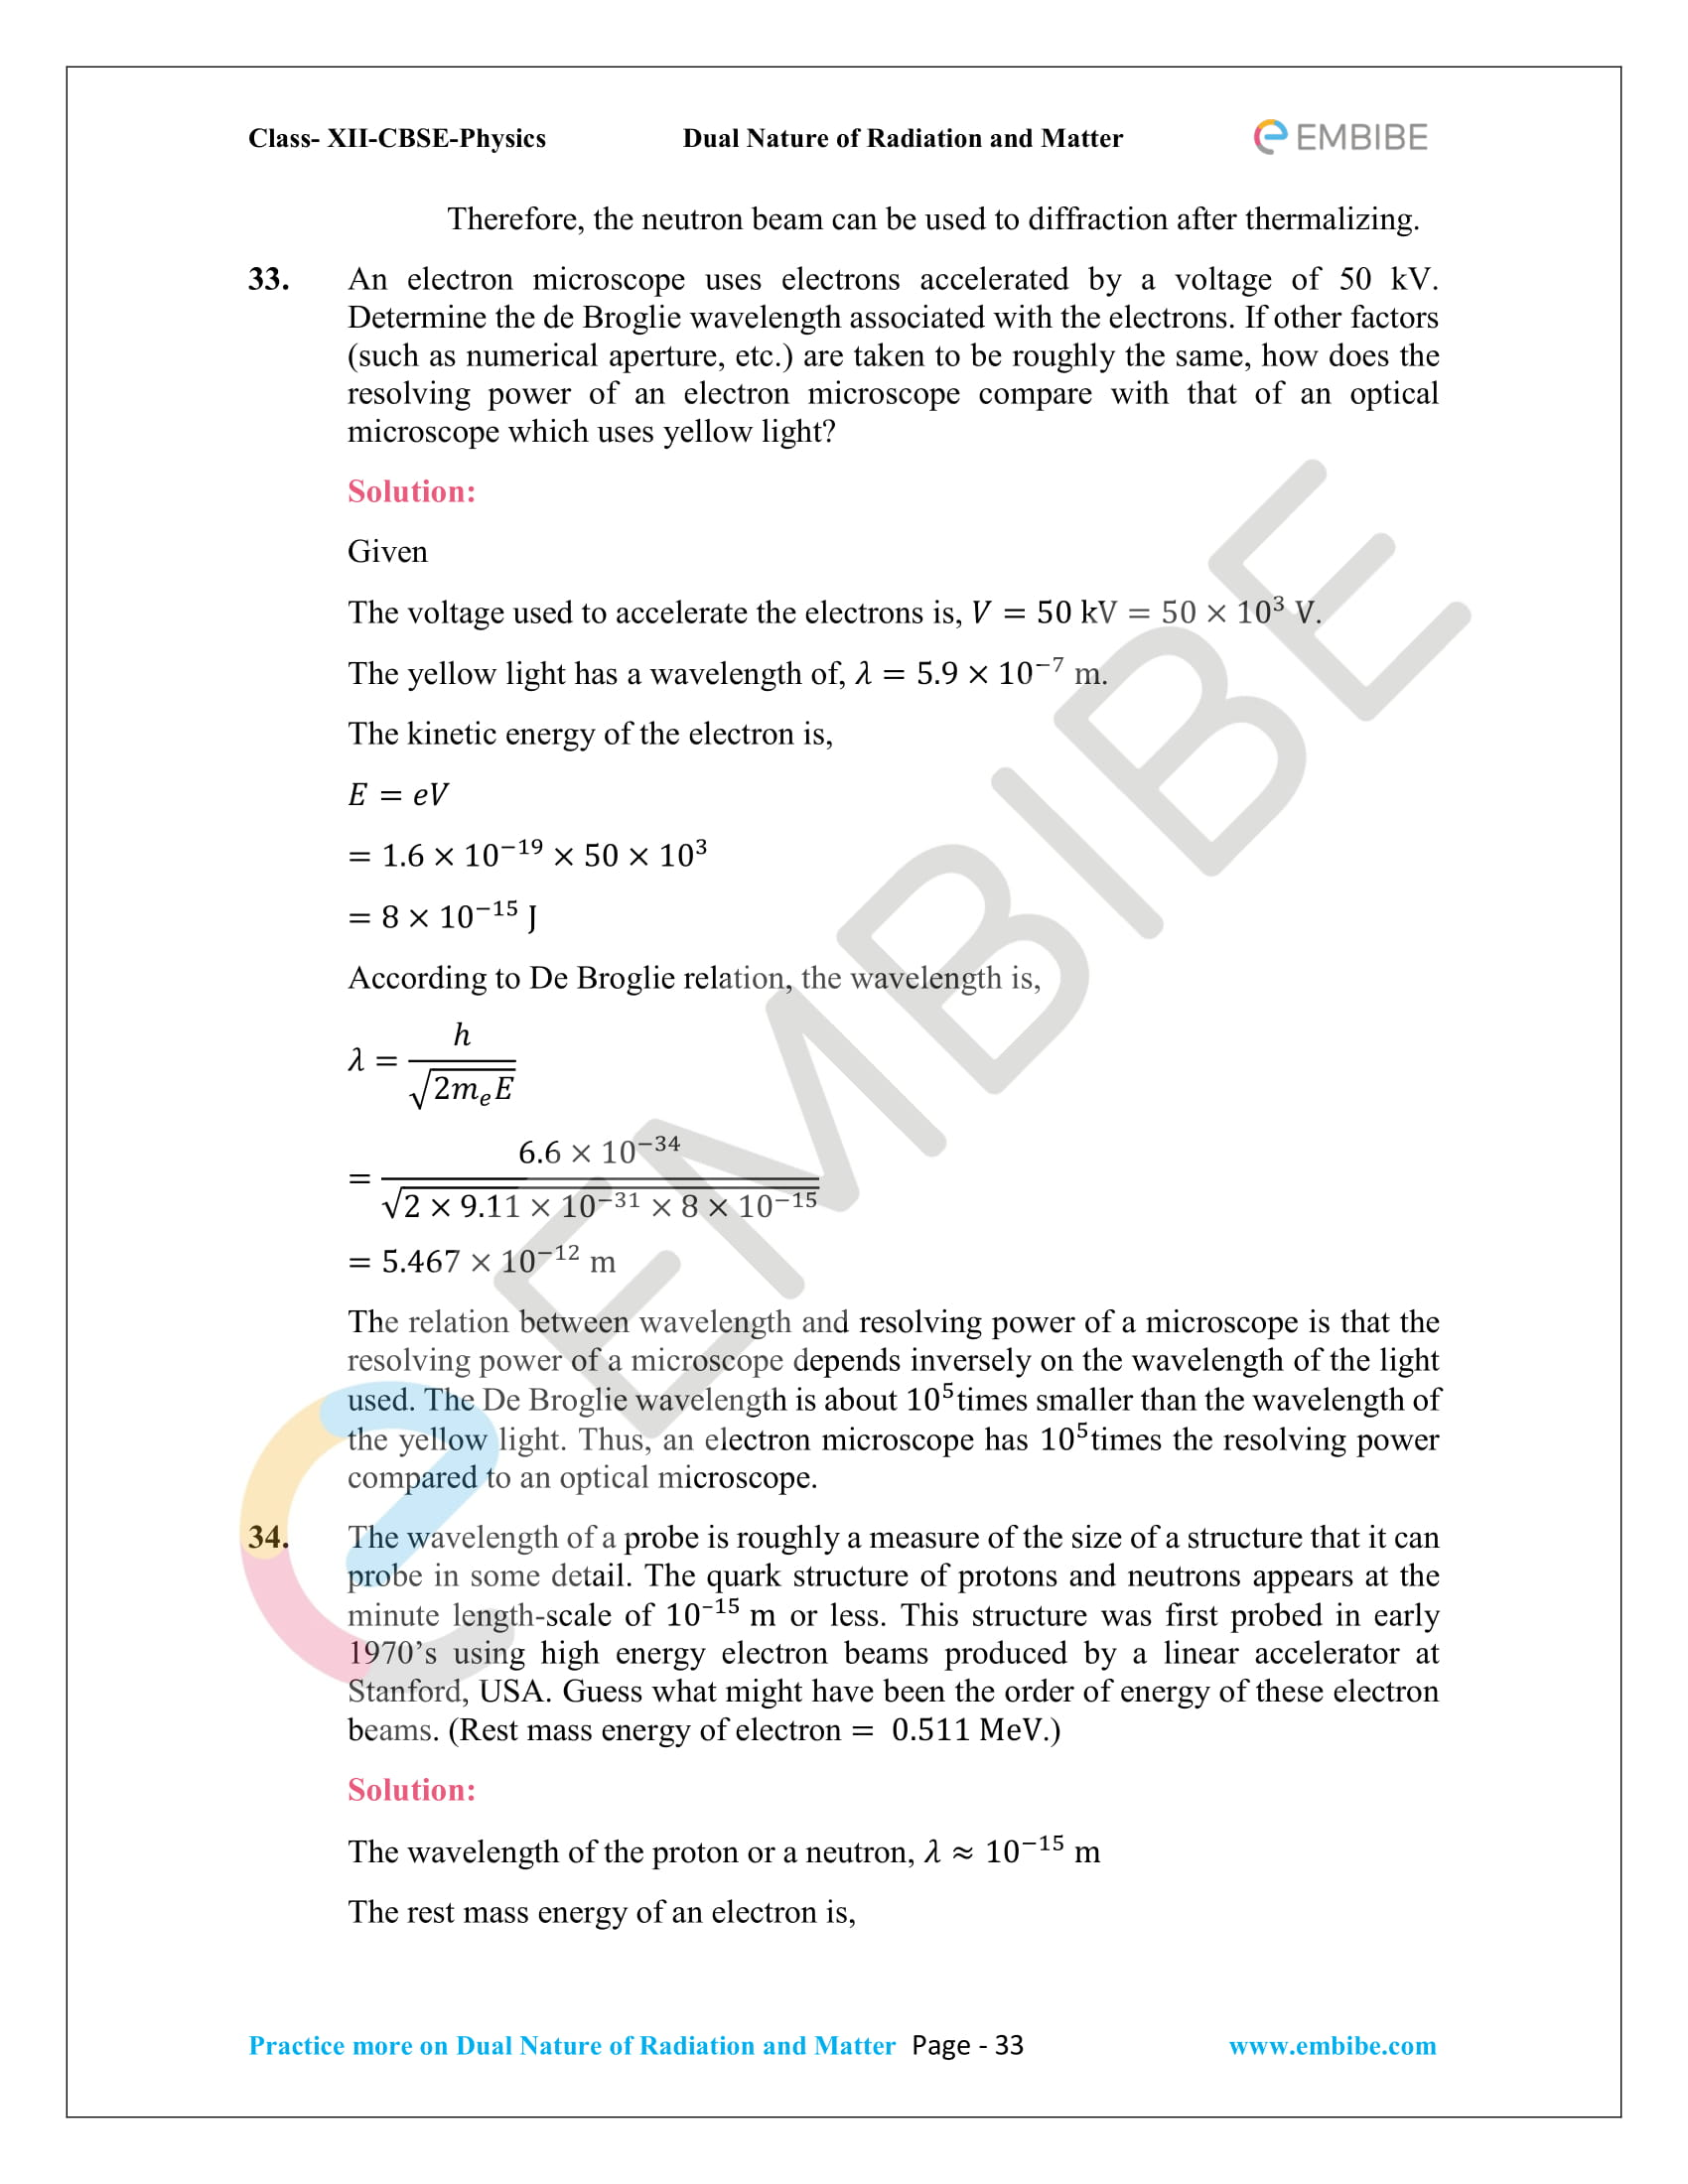 NCERT_Grade 12_Physics_Ch_11_Dual Nature of Radiation and Matter-33